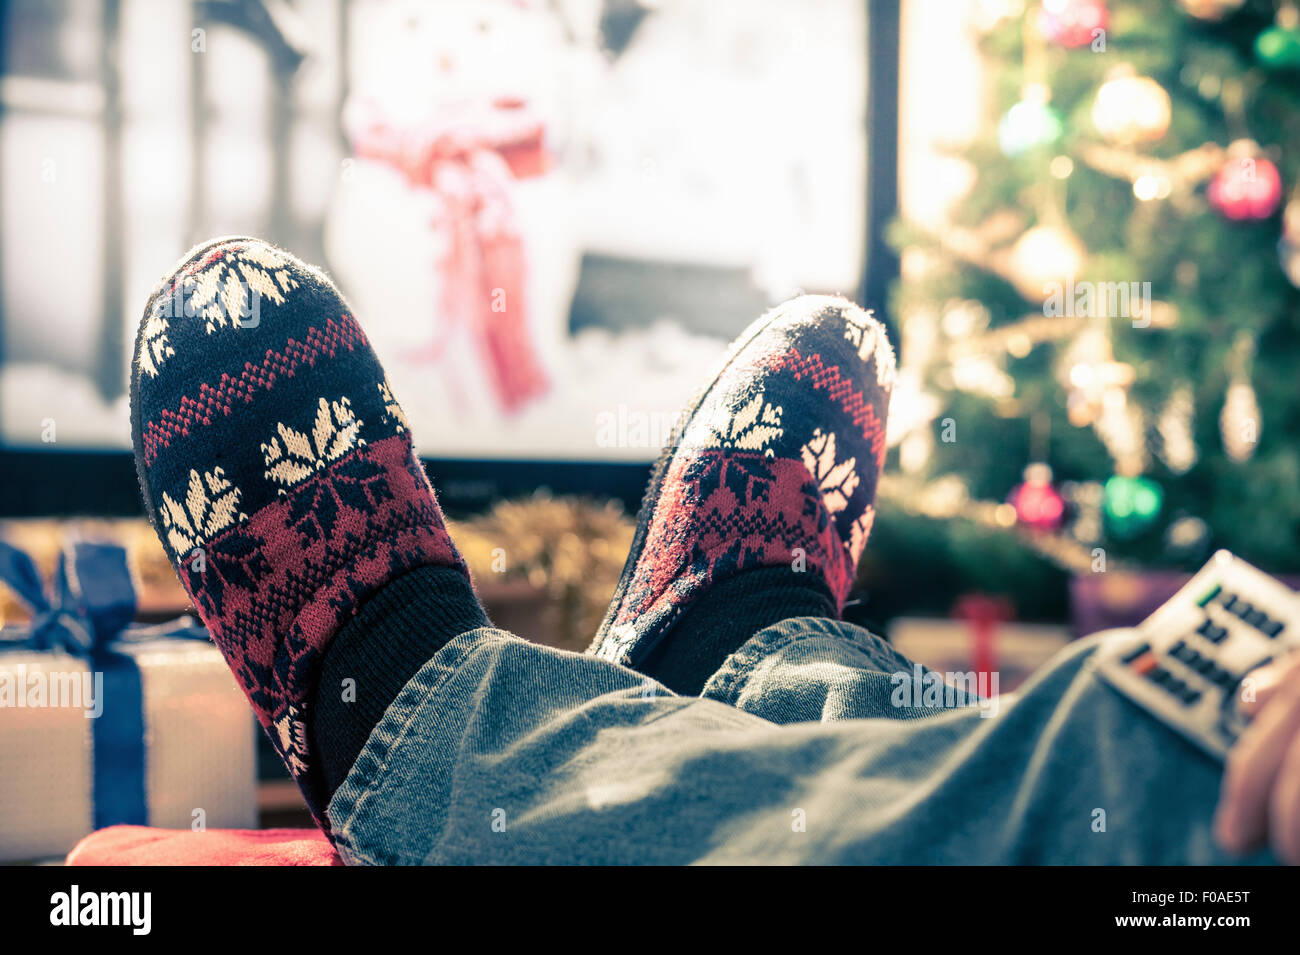 Person wearing slippers with feet up - Stock Image